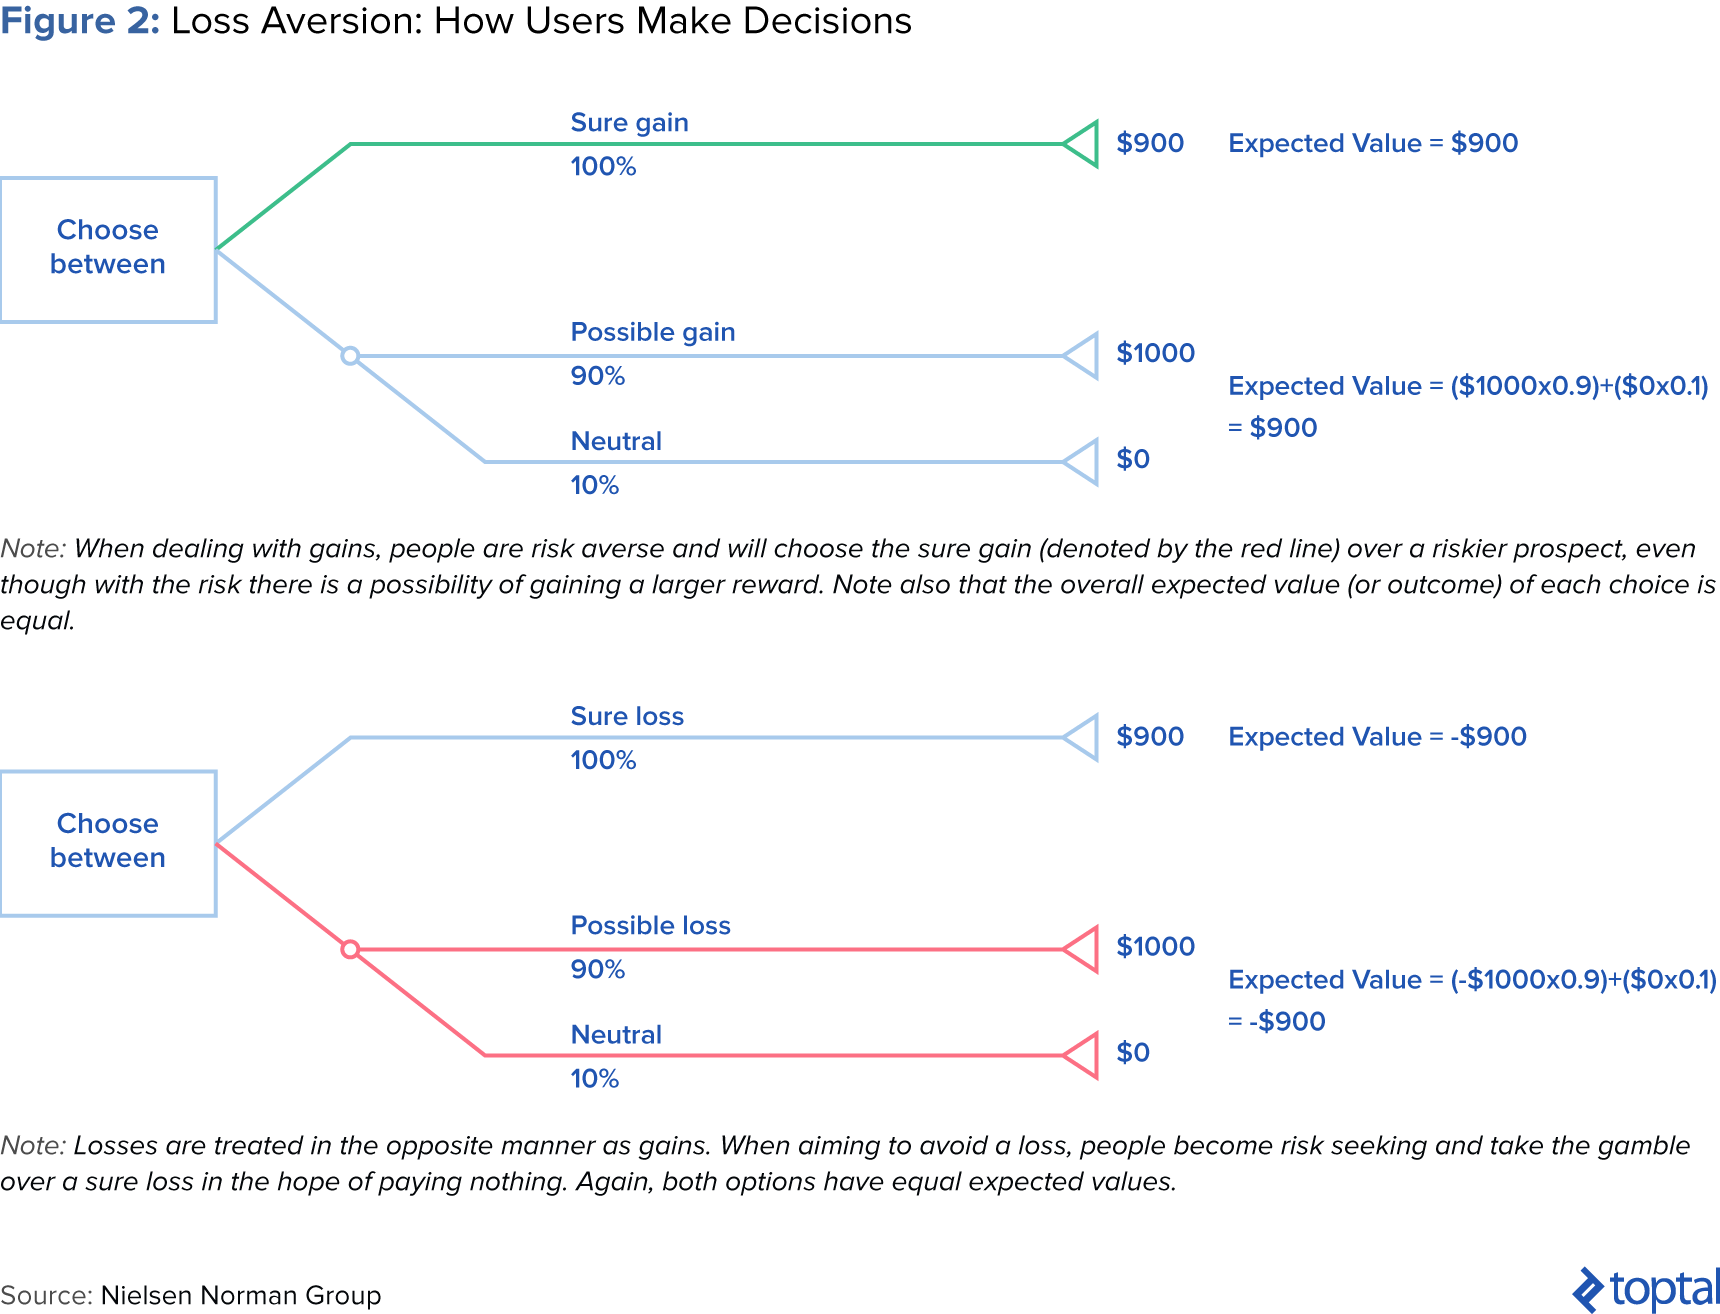 Figure 2: Loss Aversion: How Users Make Decisions